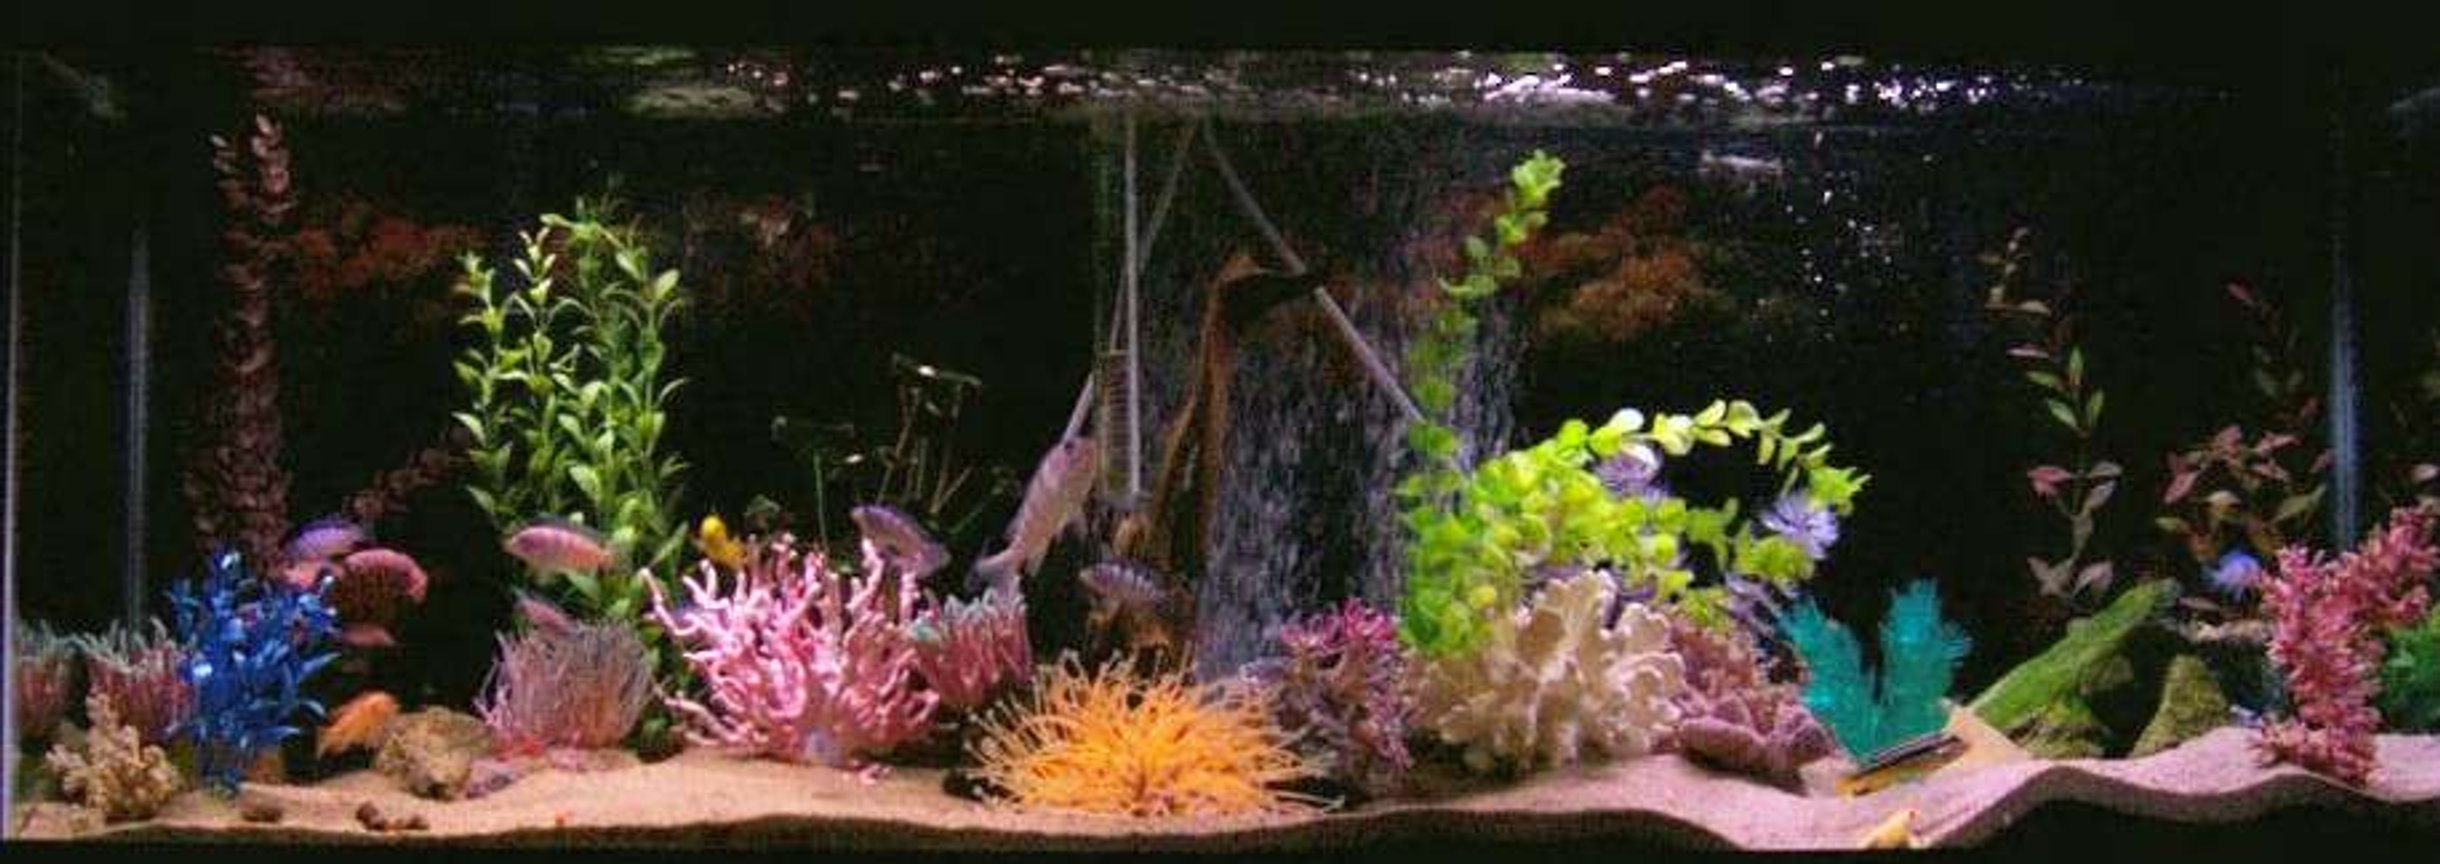 55 gallons freshwater fish tank (mostly fish and non-living decorations) - love my tank!